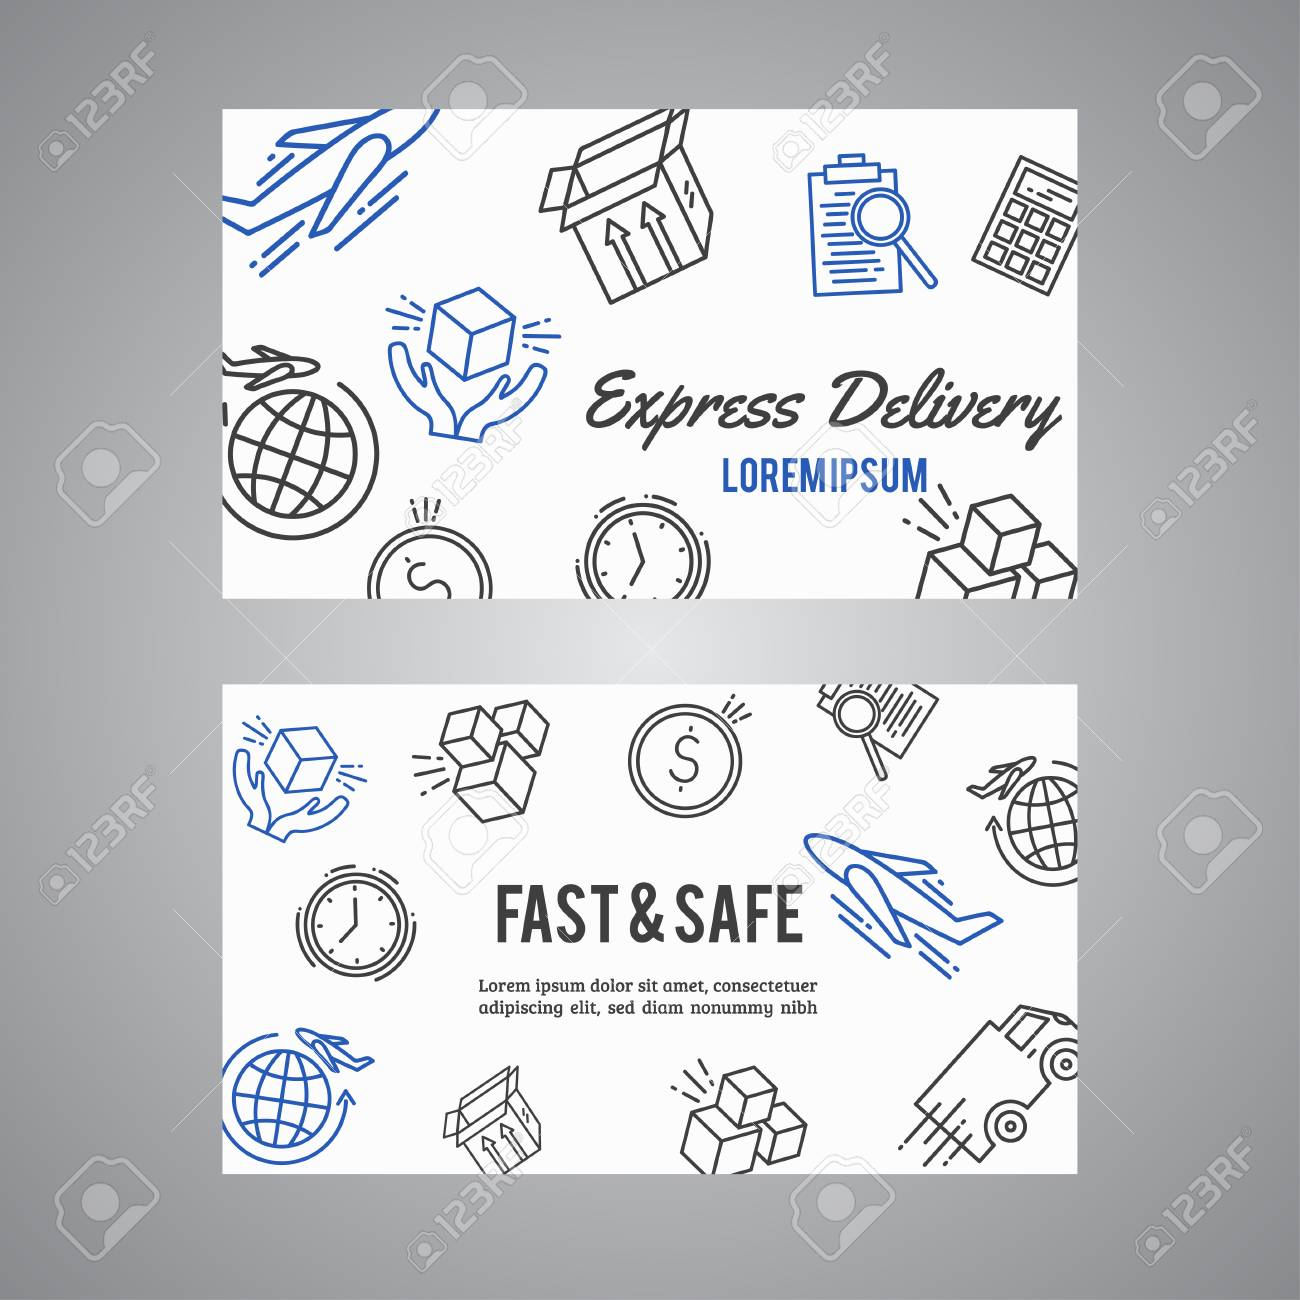 Express Delivery Line Icon Business Card. Courier And Shipping ...